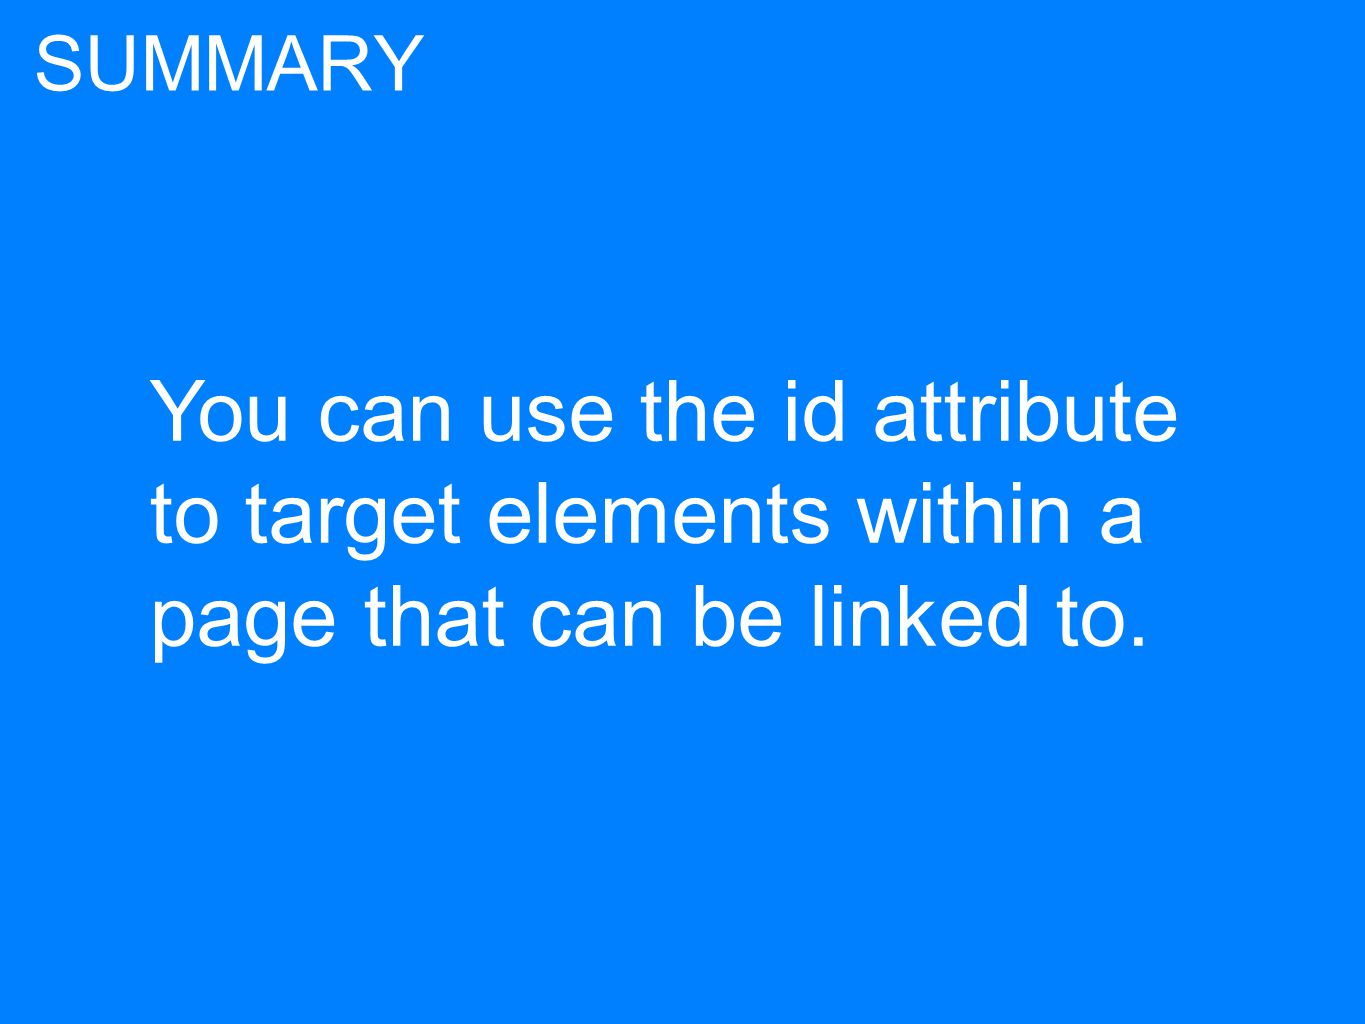 You can use the id attribute to target elements within a page that can be linked to. SUMMARY